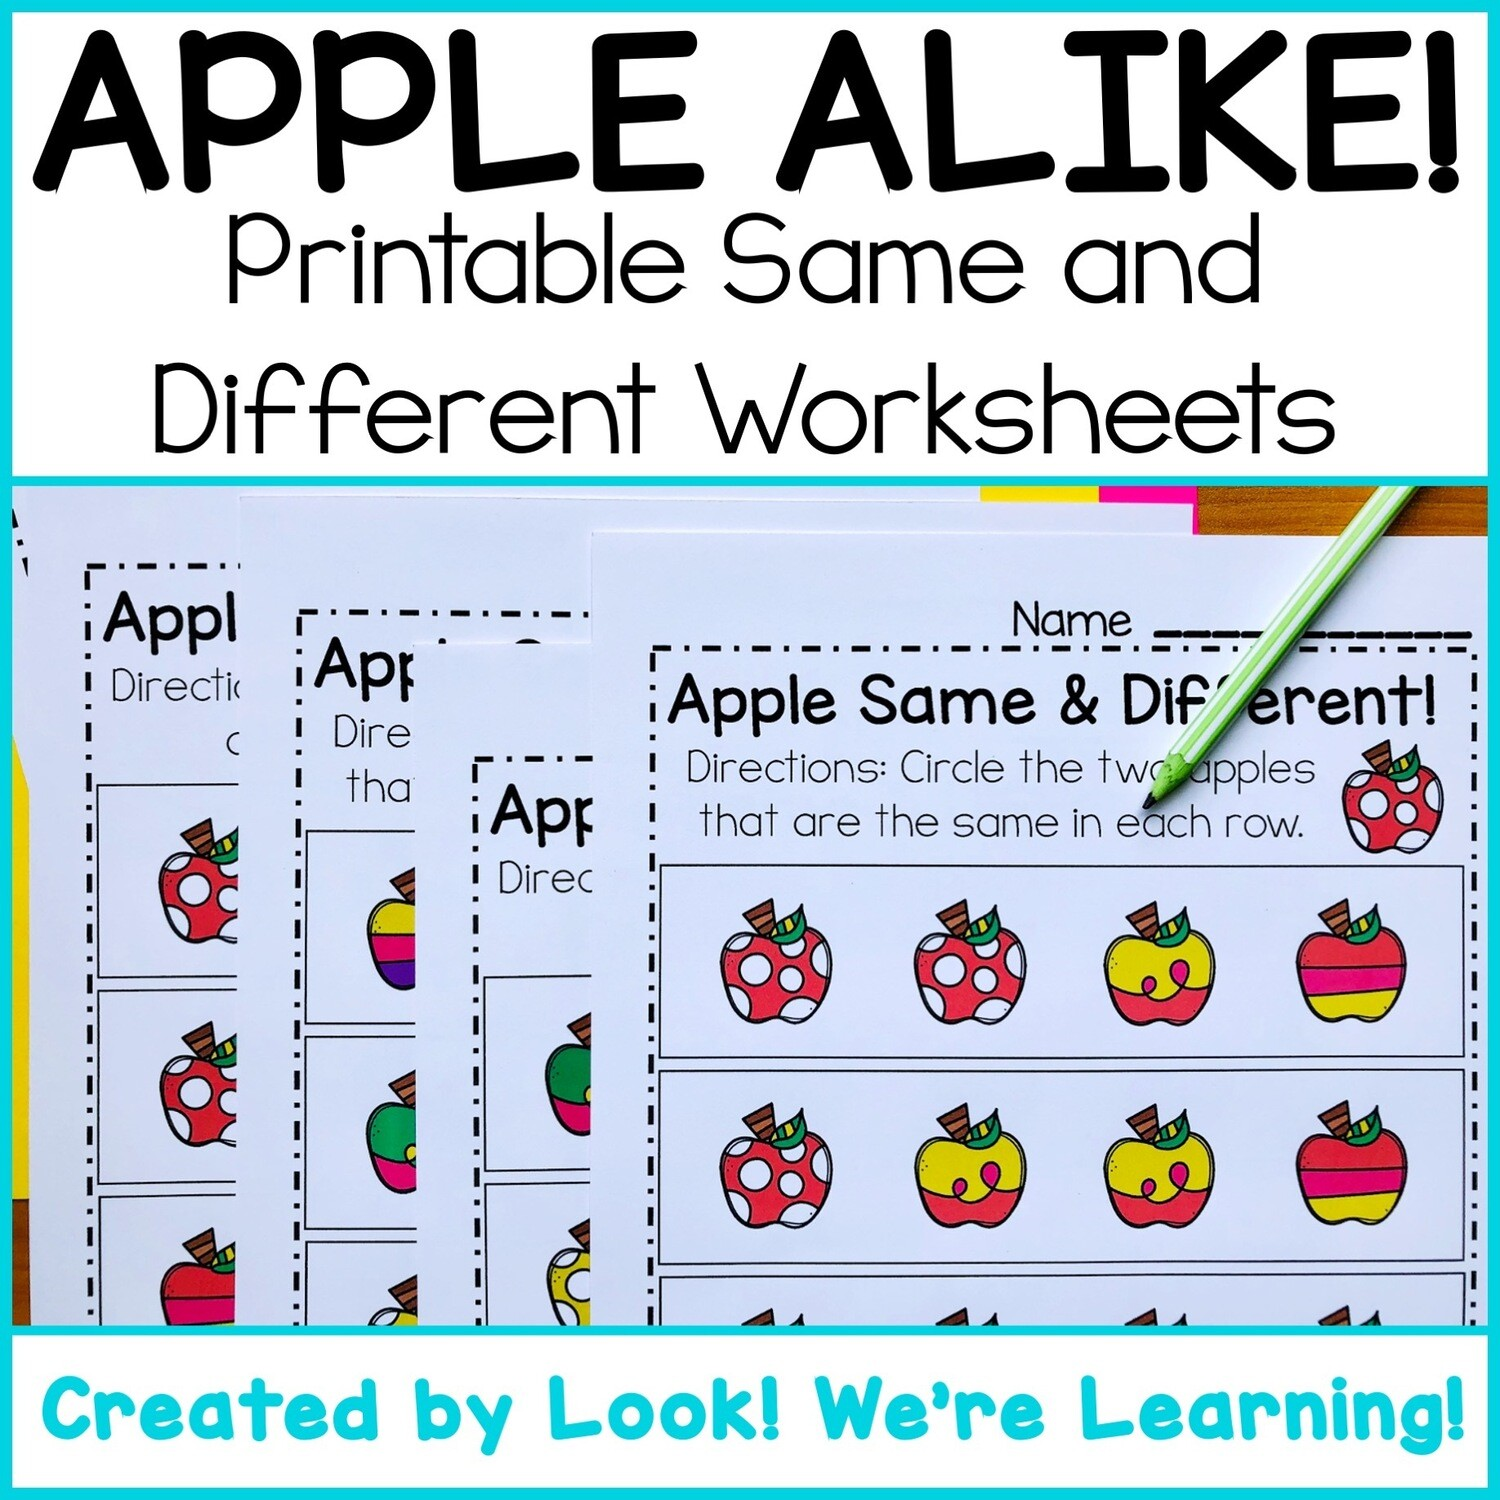 Apple Alike! Printable Same or Different Activity